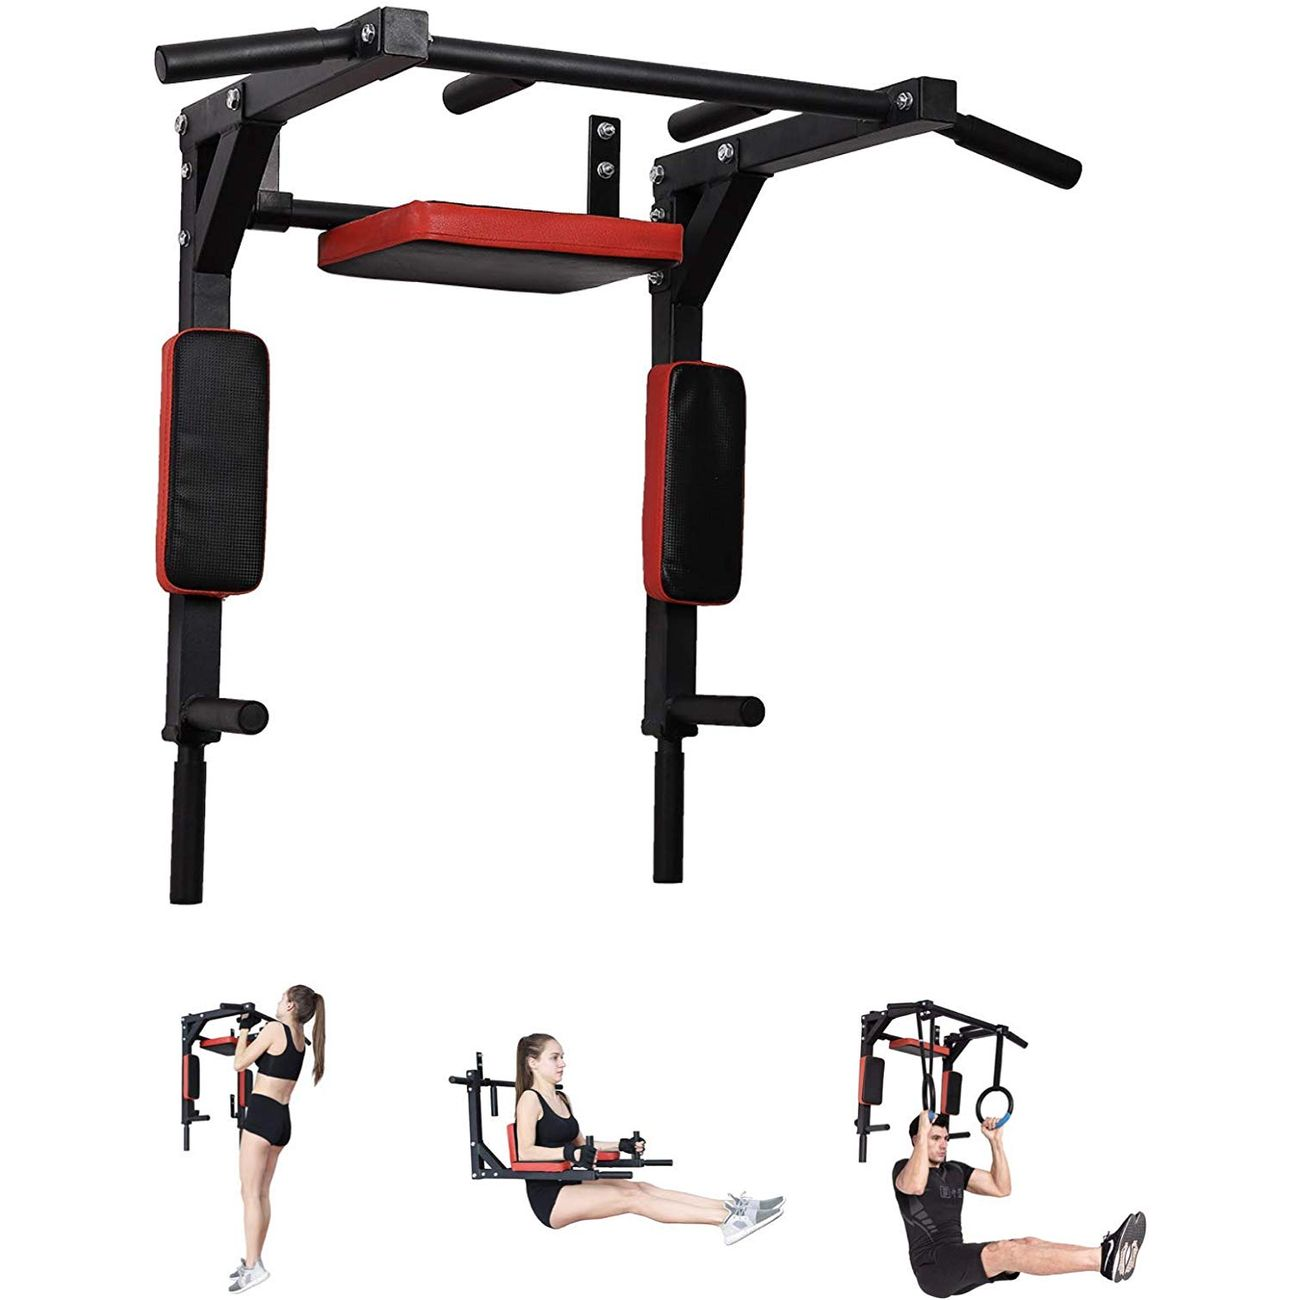 PULL UP FITNESS Pull Up Fitness - Barre de Traction Fixation Murale, Noir/Rouge